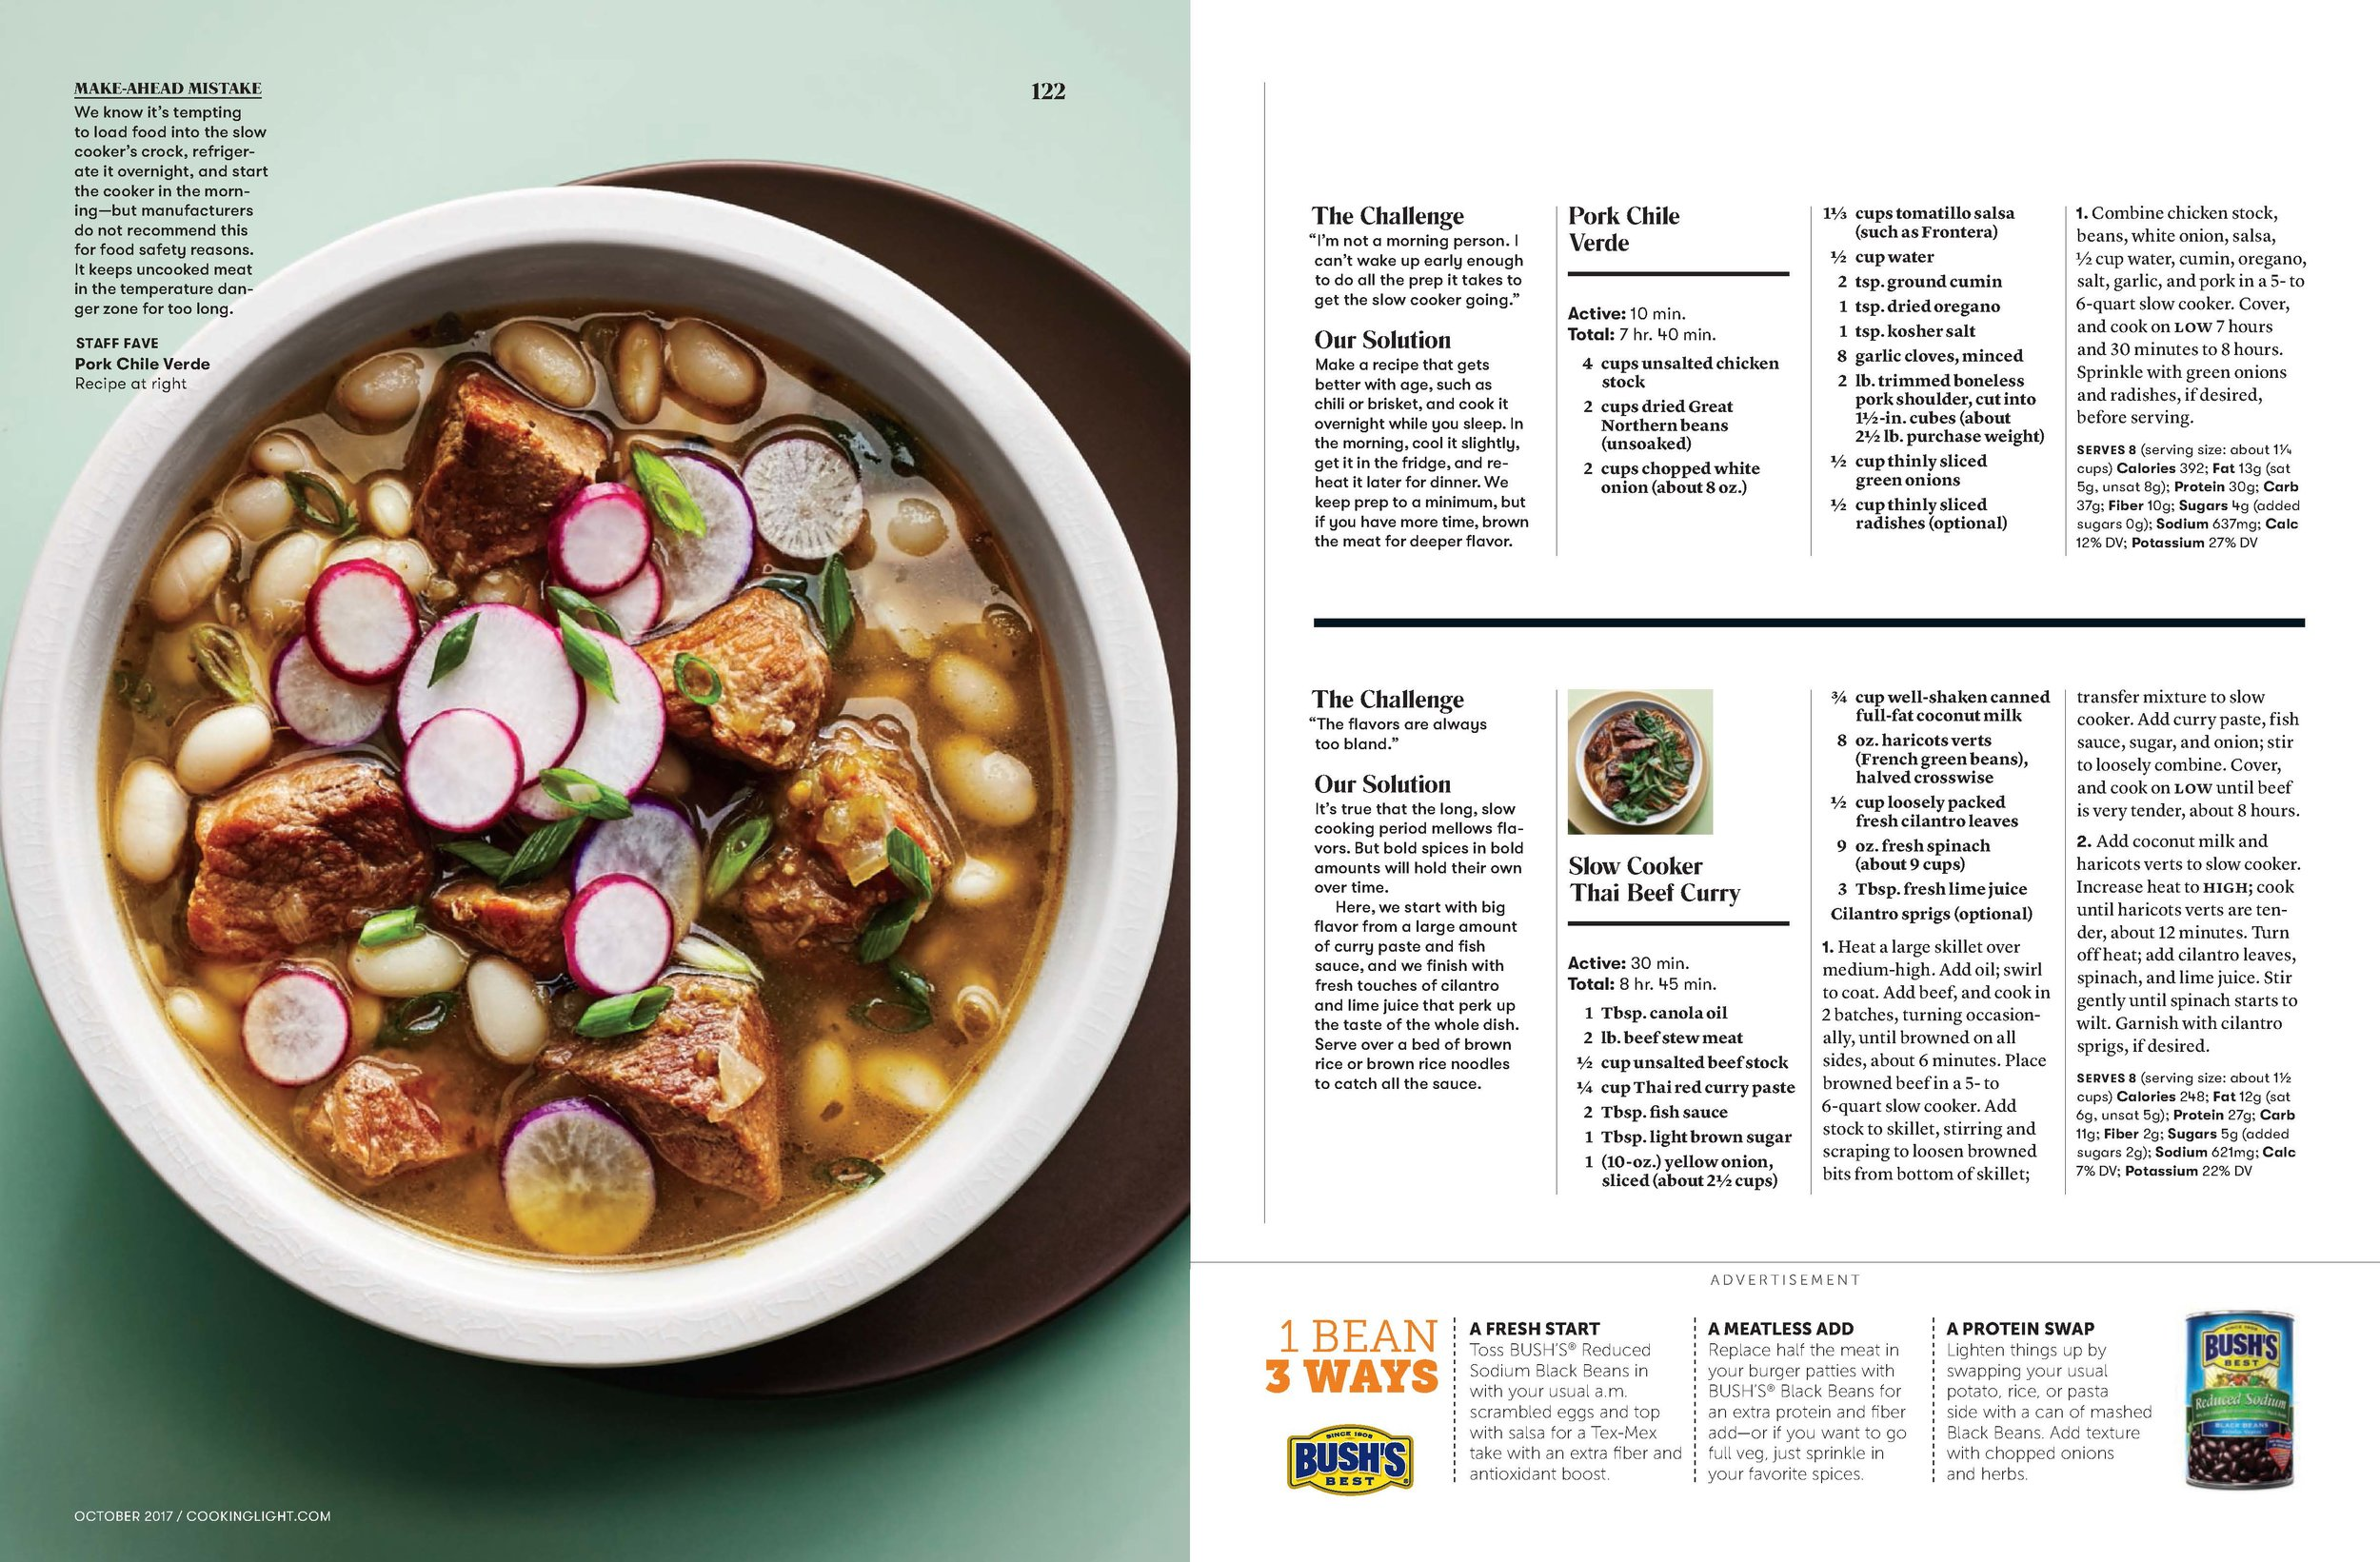 2017_10Oct_FoodSnobsGuideToSlowCooker_Page_2.jpg